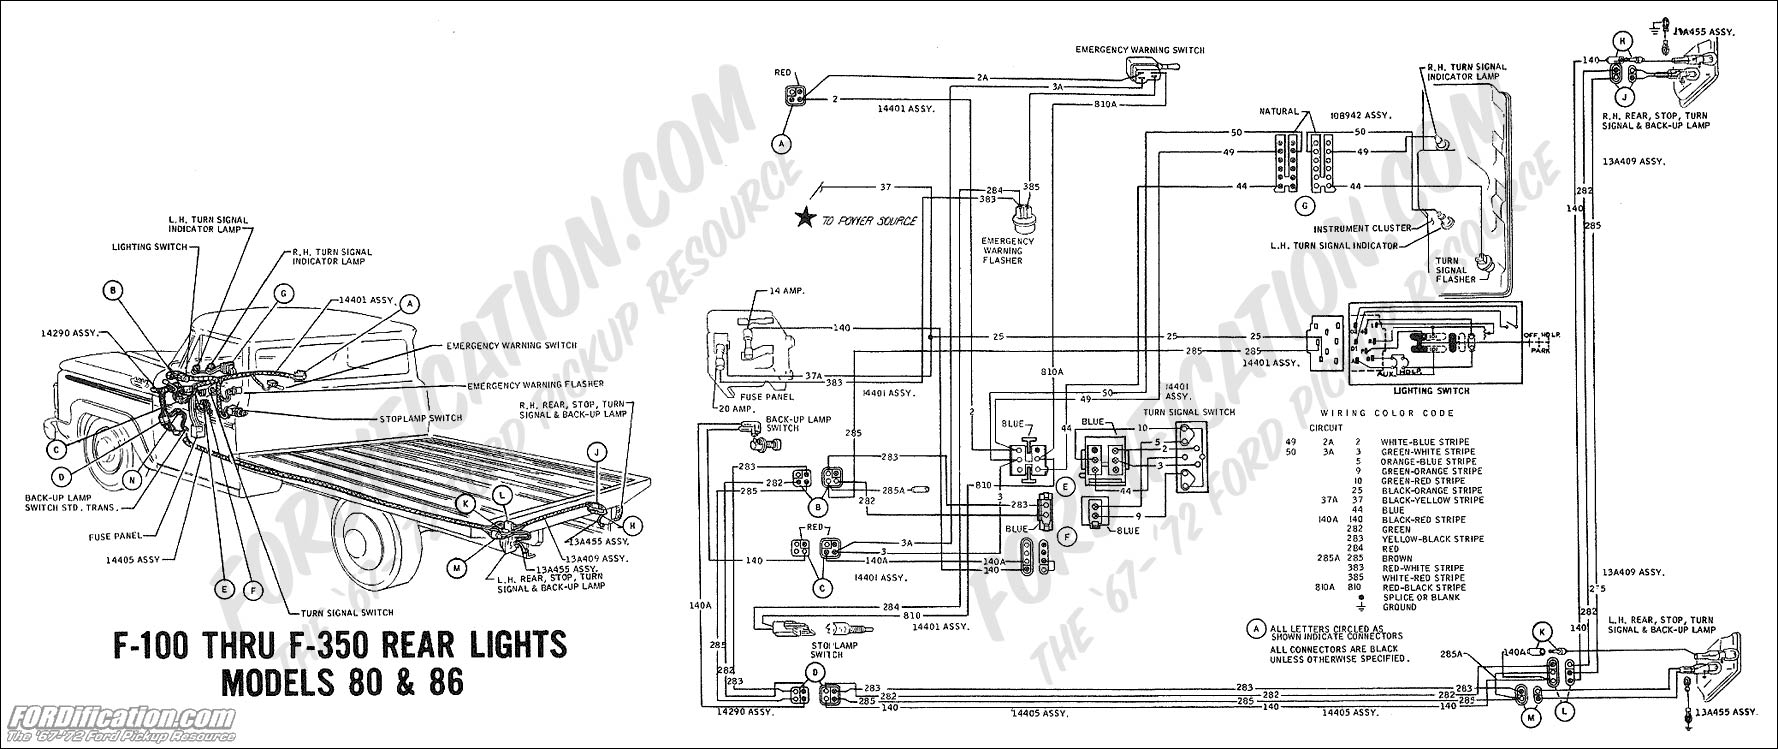 1990 Ford F 250 7 3 Wiring Diagram Truck Technical Drawings And Schematics Section H 1969 100 Thru 350 Rear Lights Models 80 86